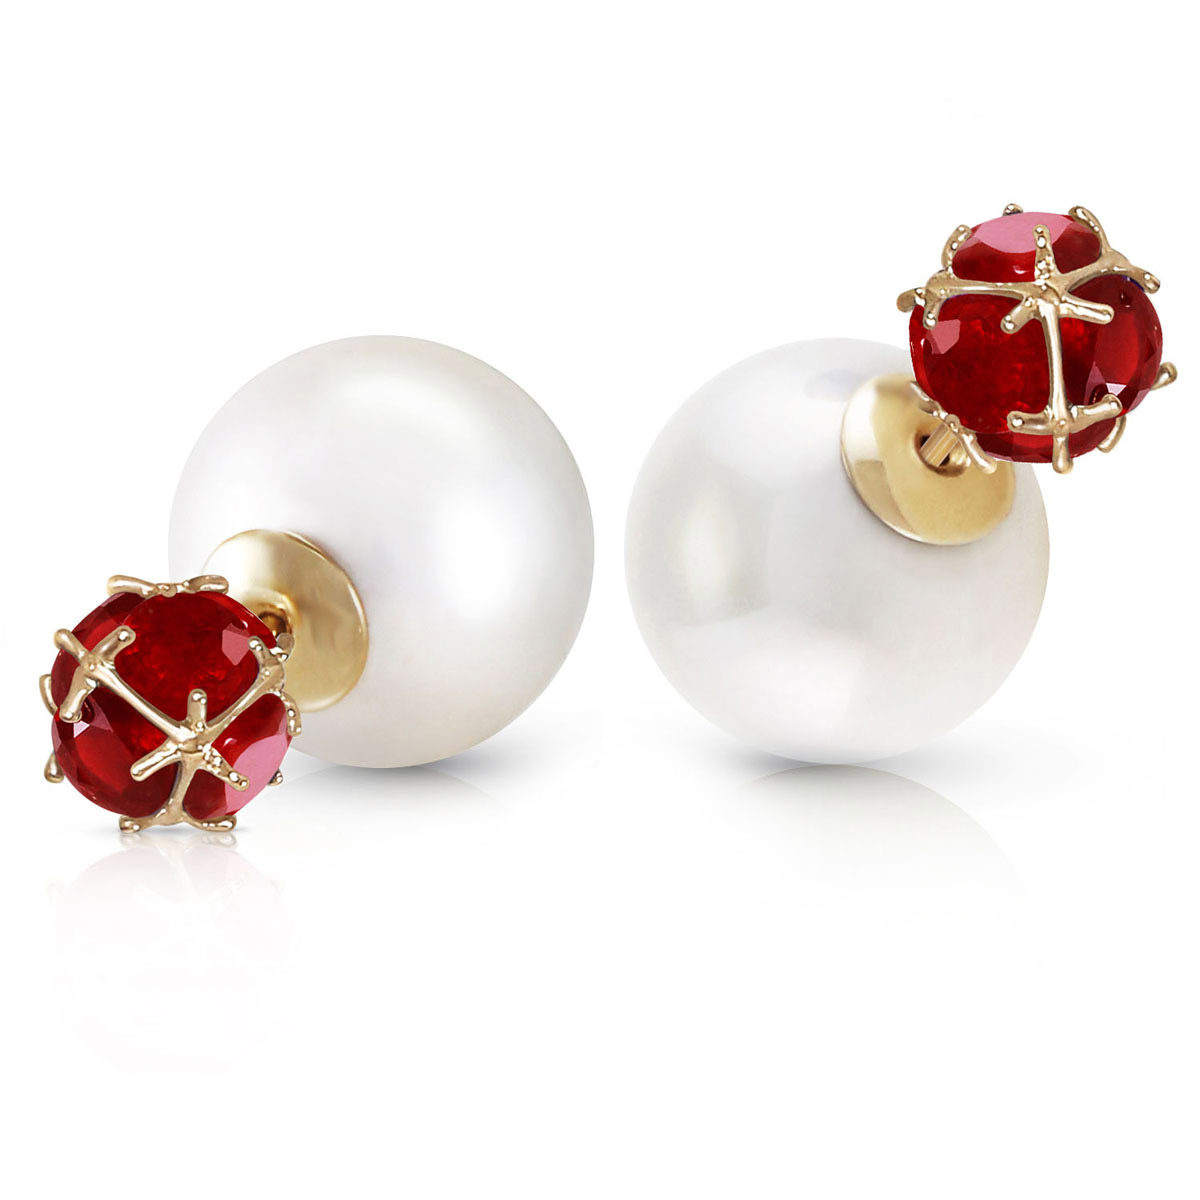 Pearl Double Shell Stud Earrings 72.3 ctw in 9ct Gold